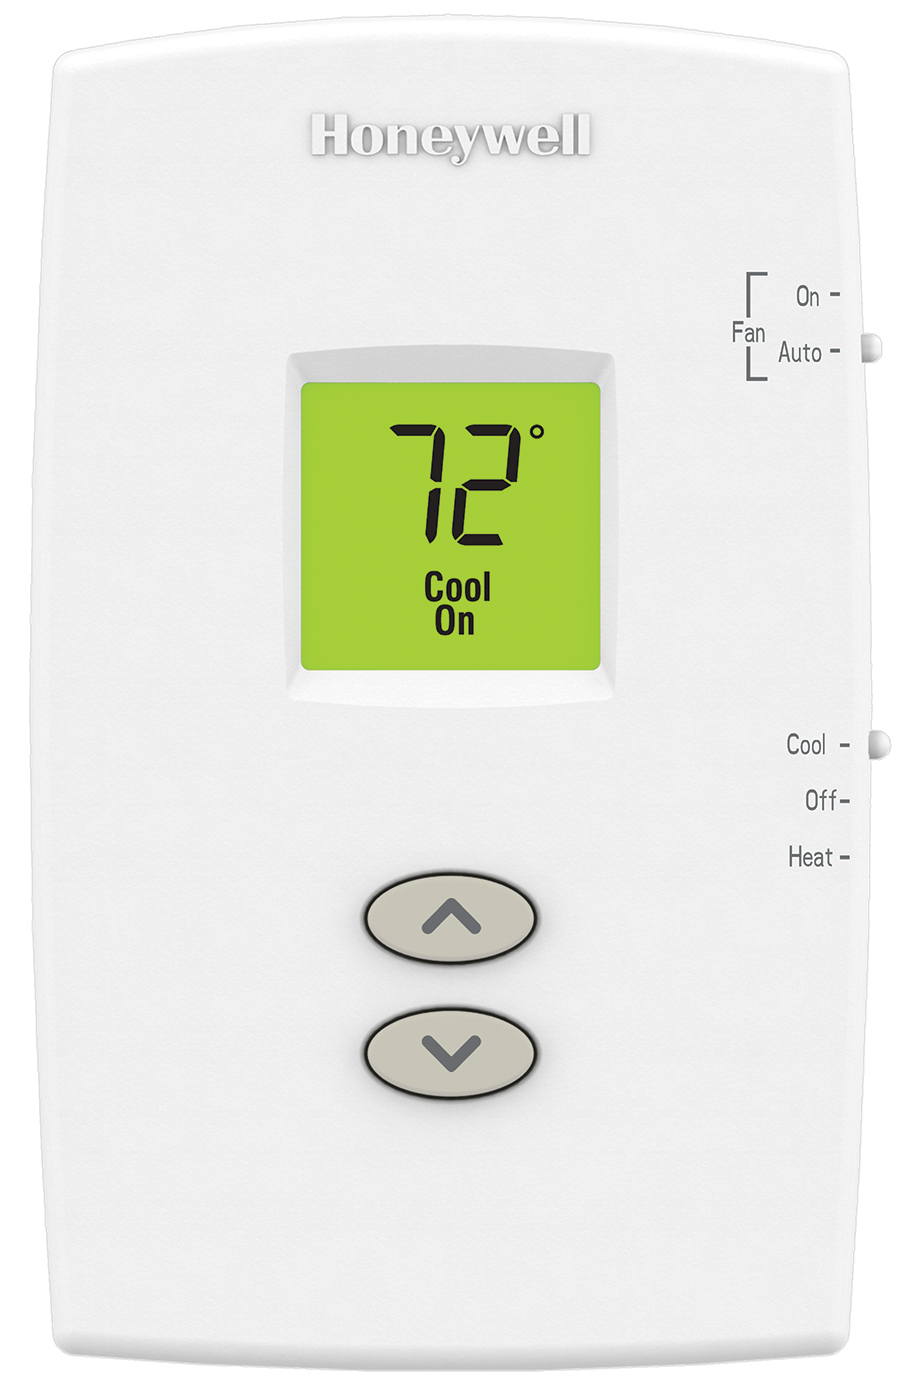 Honeywell Pro 1000 Non Programmable Thermostat In Toronto Best Rth2410 Wiring Diagram Single Stage Heat Cool Vertical Thermo